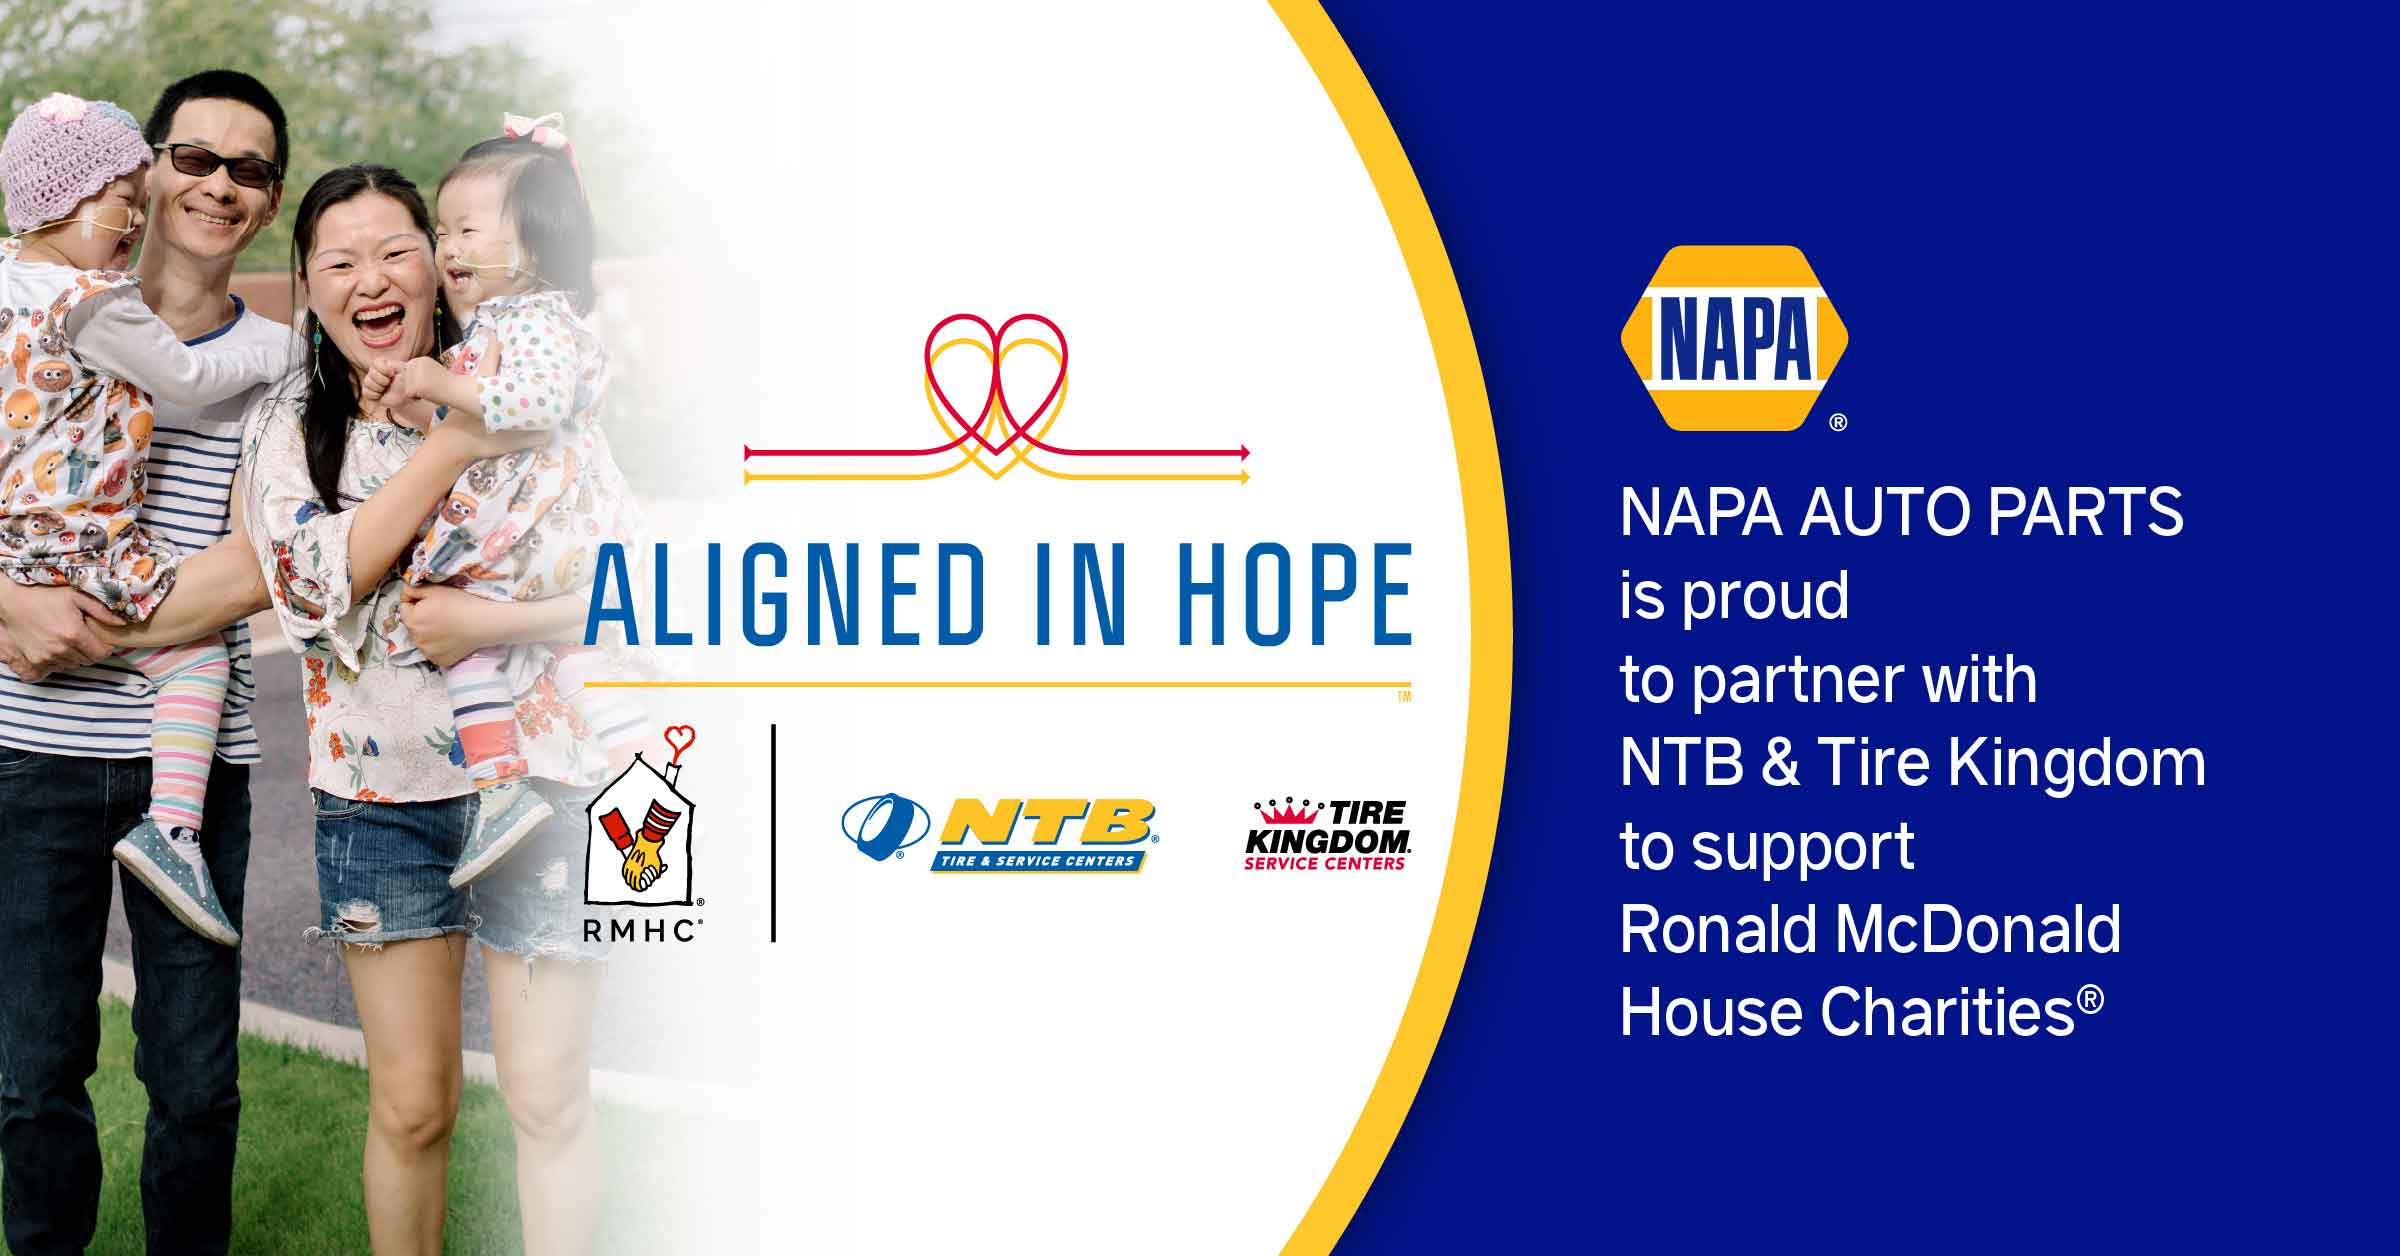 NAPA AUTO PARTS Is Aligned in Hope to Support Ronald McDonald House Charities